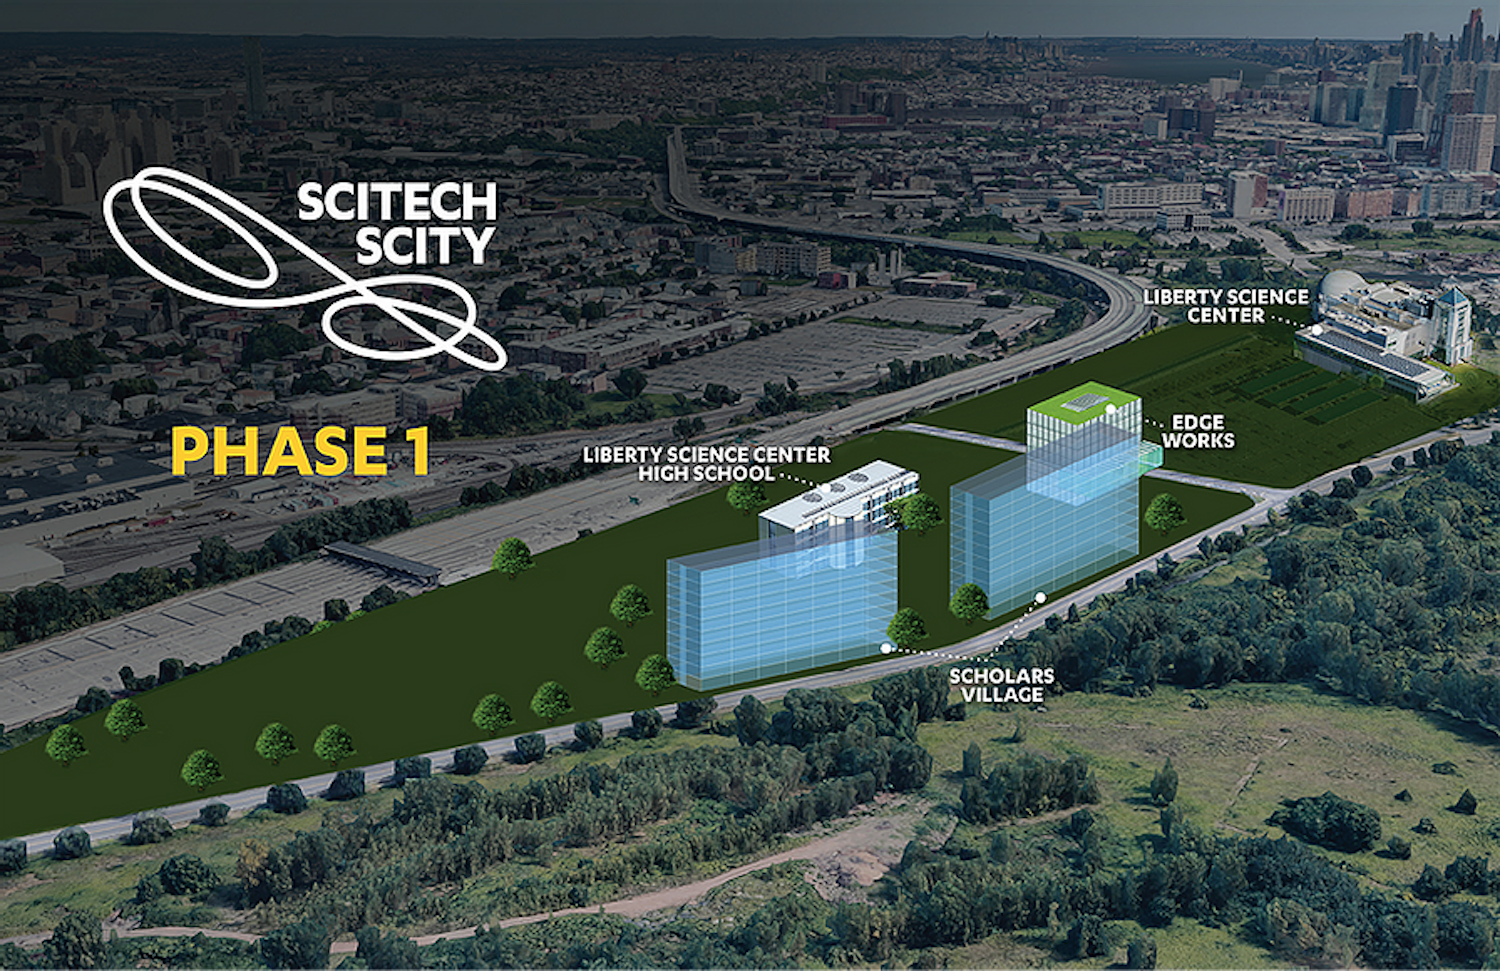 Phase One of SciTech Scity in Jersey City. All images courtesy of SciTech Scity.